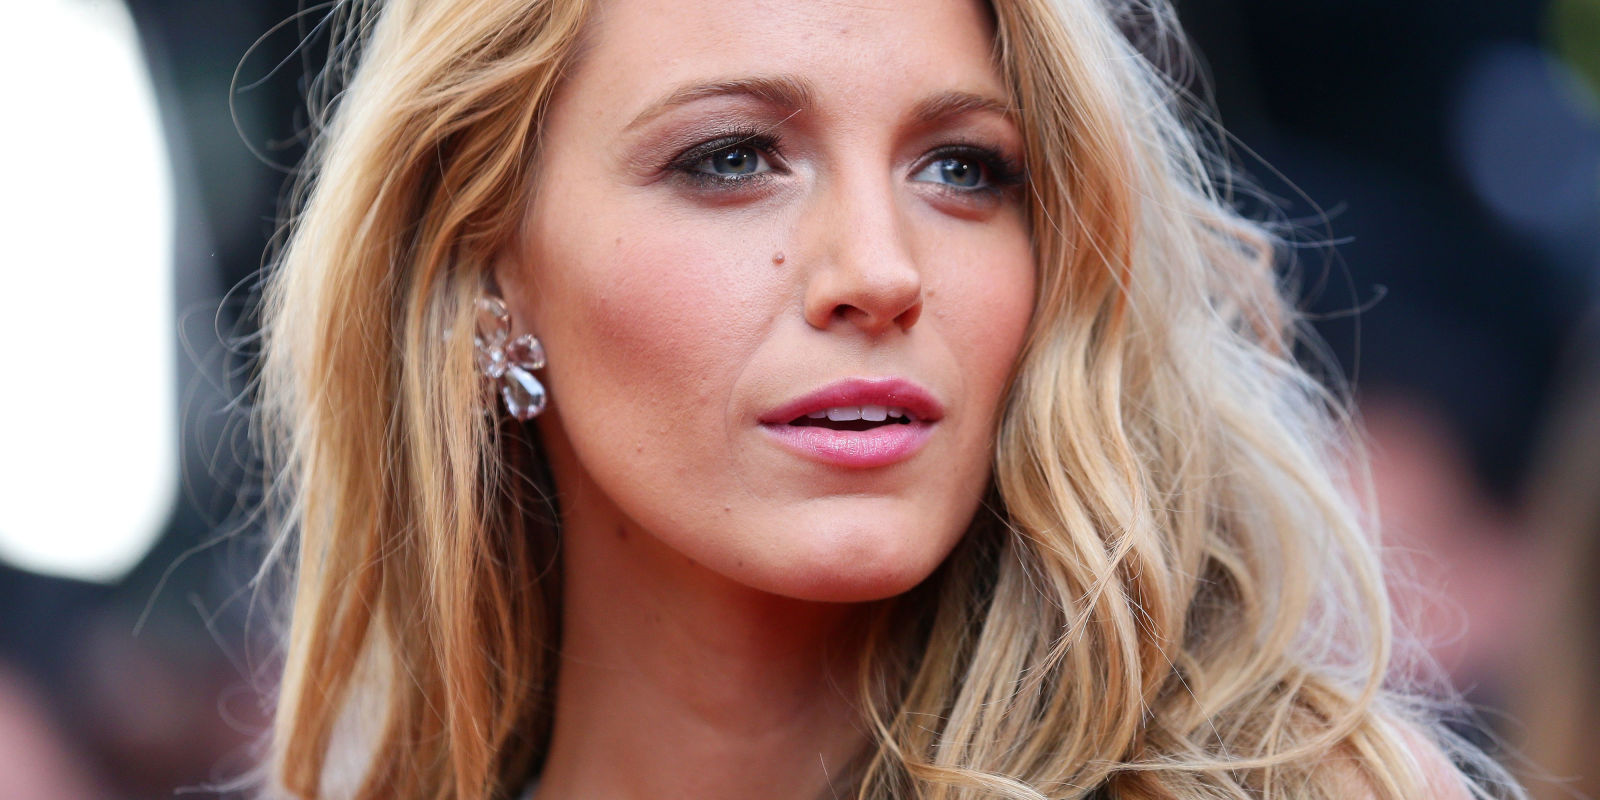 Blake Lively says she was harassed by a make-up artist